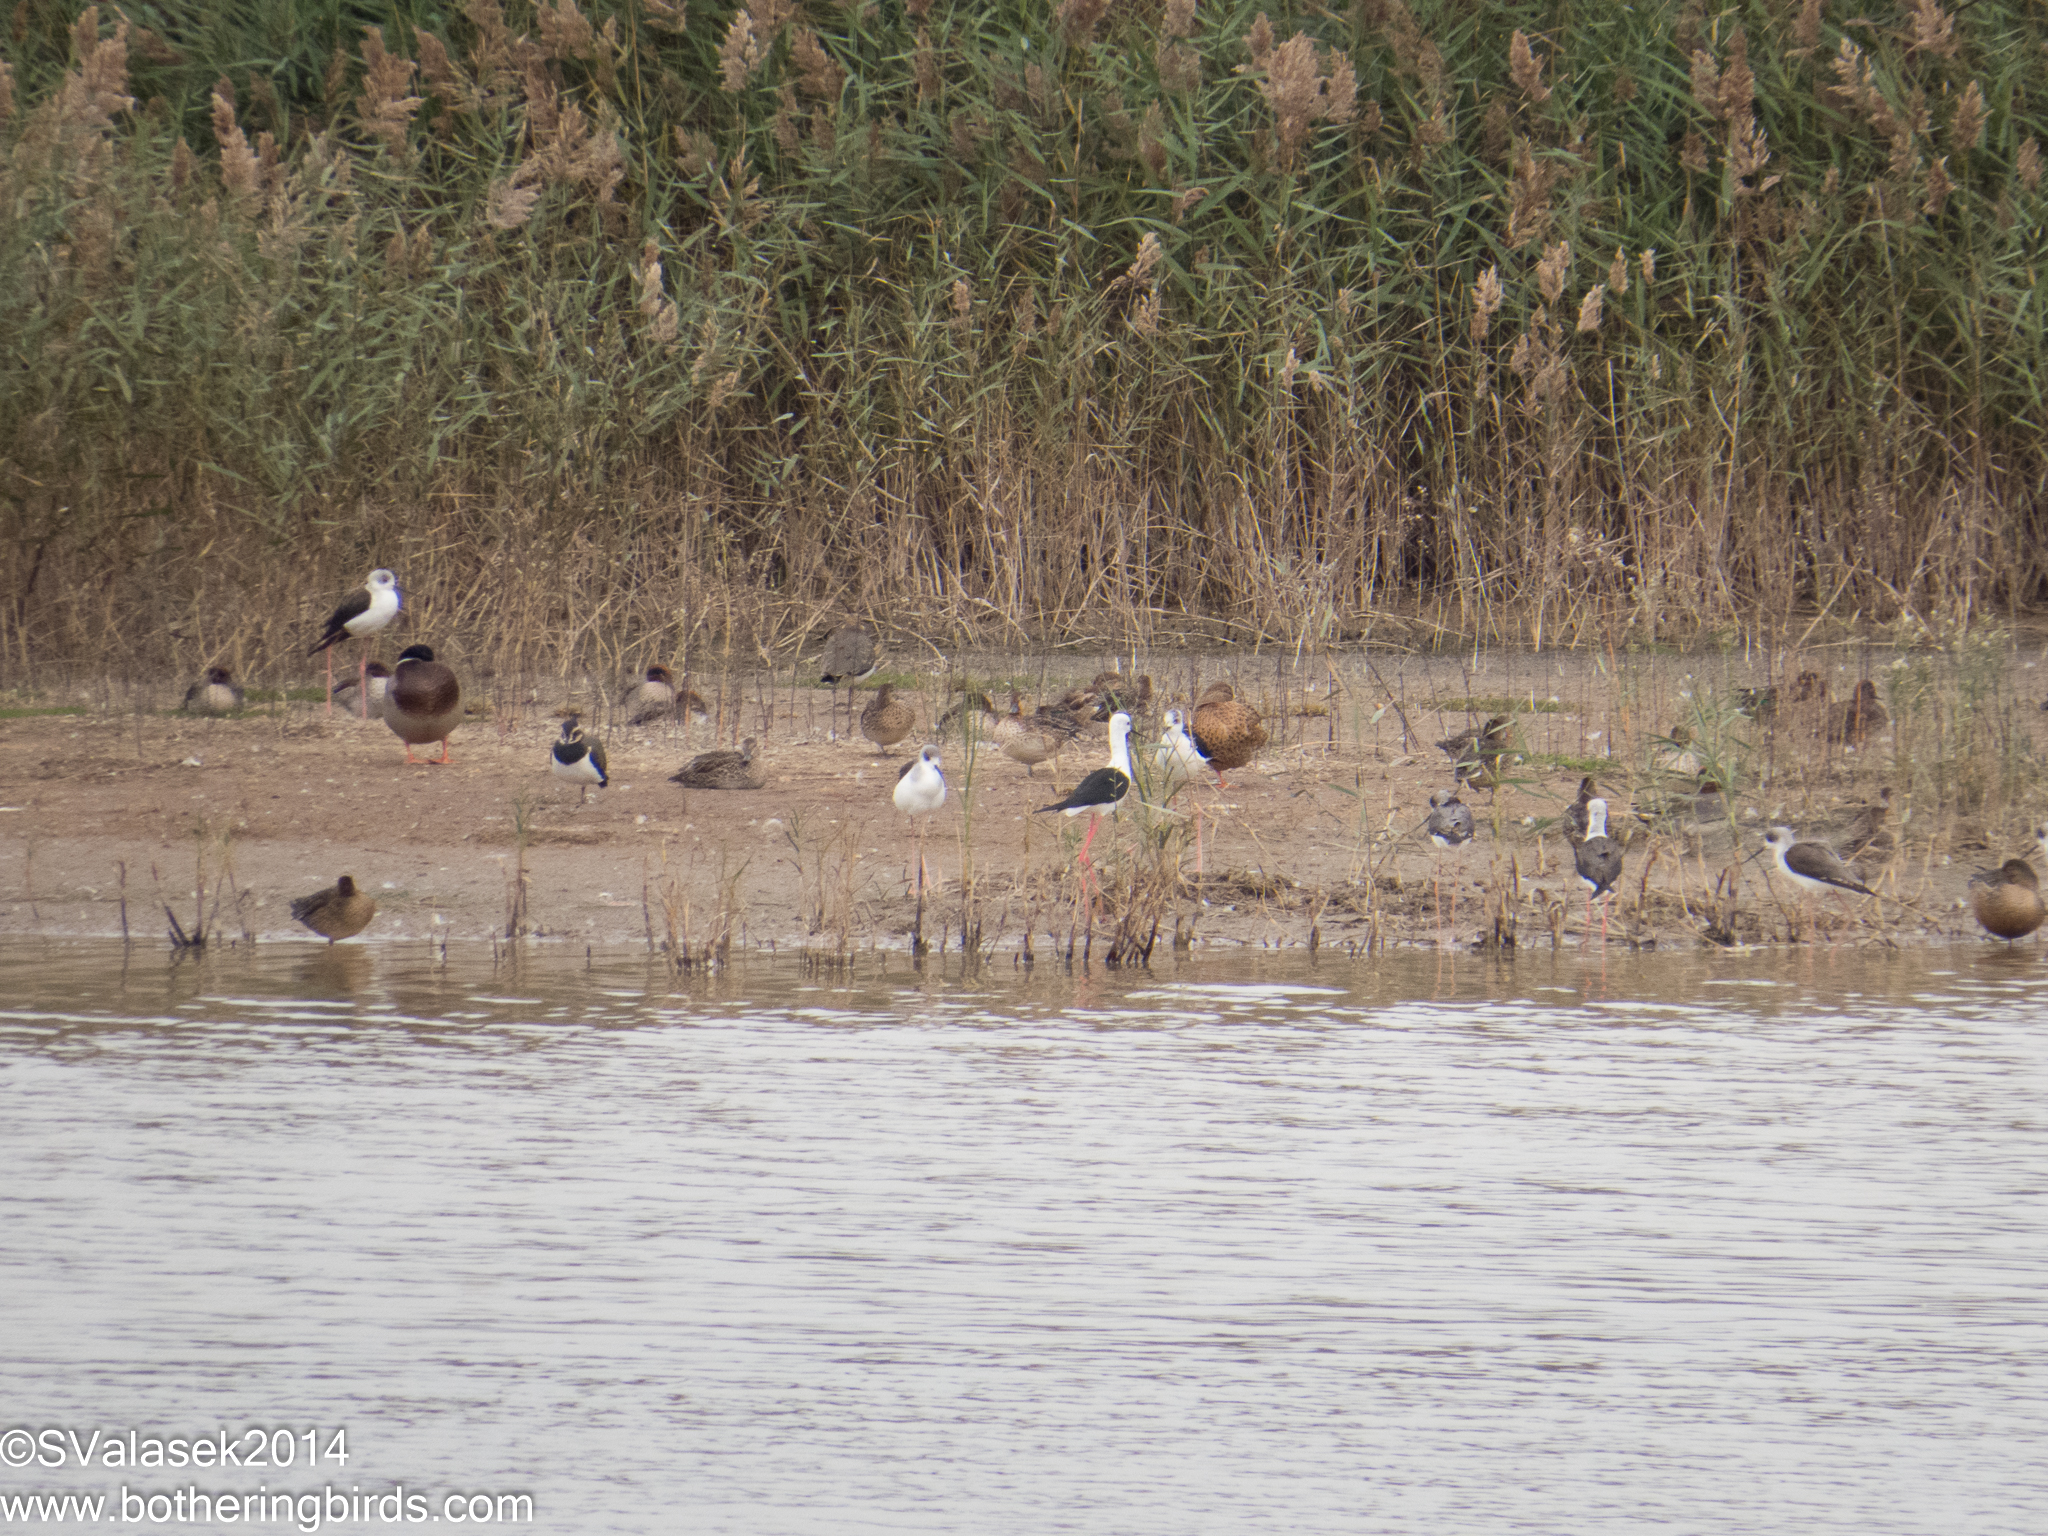 Black-Winged Stilts and Lapwings